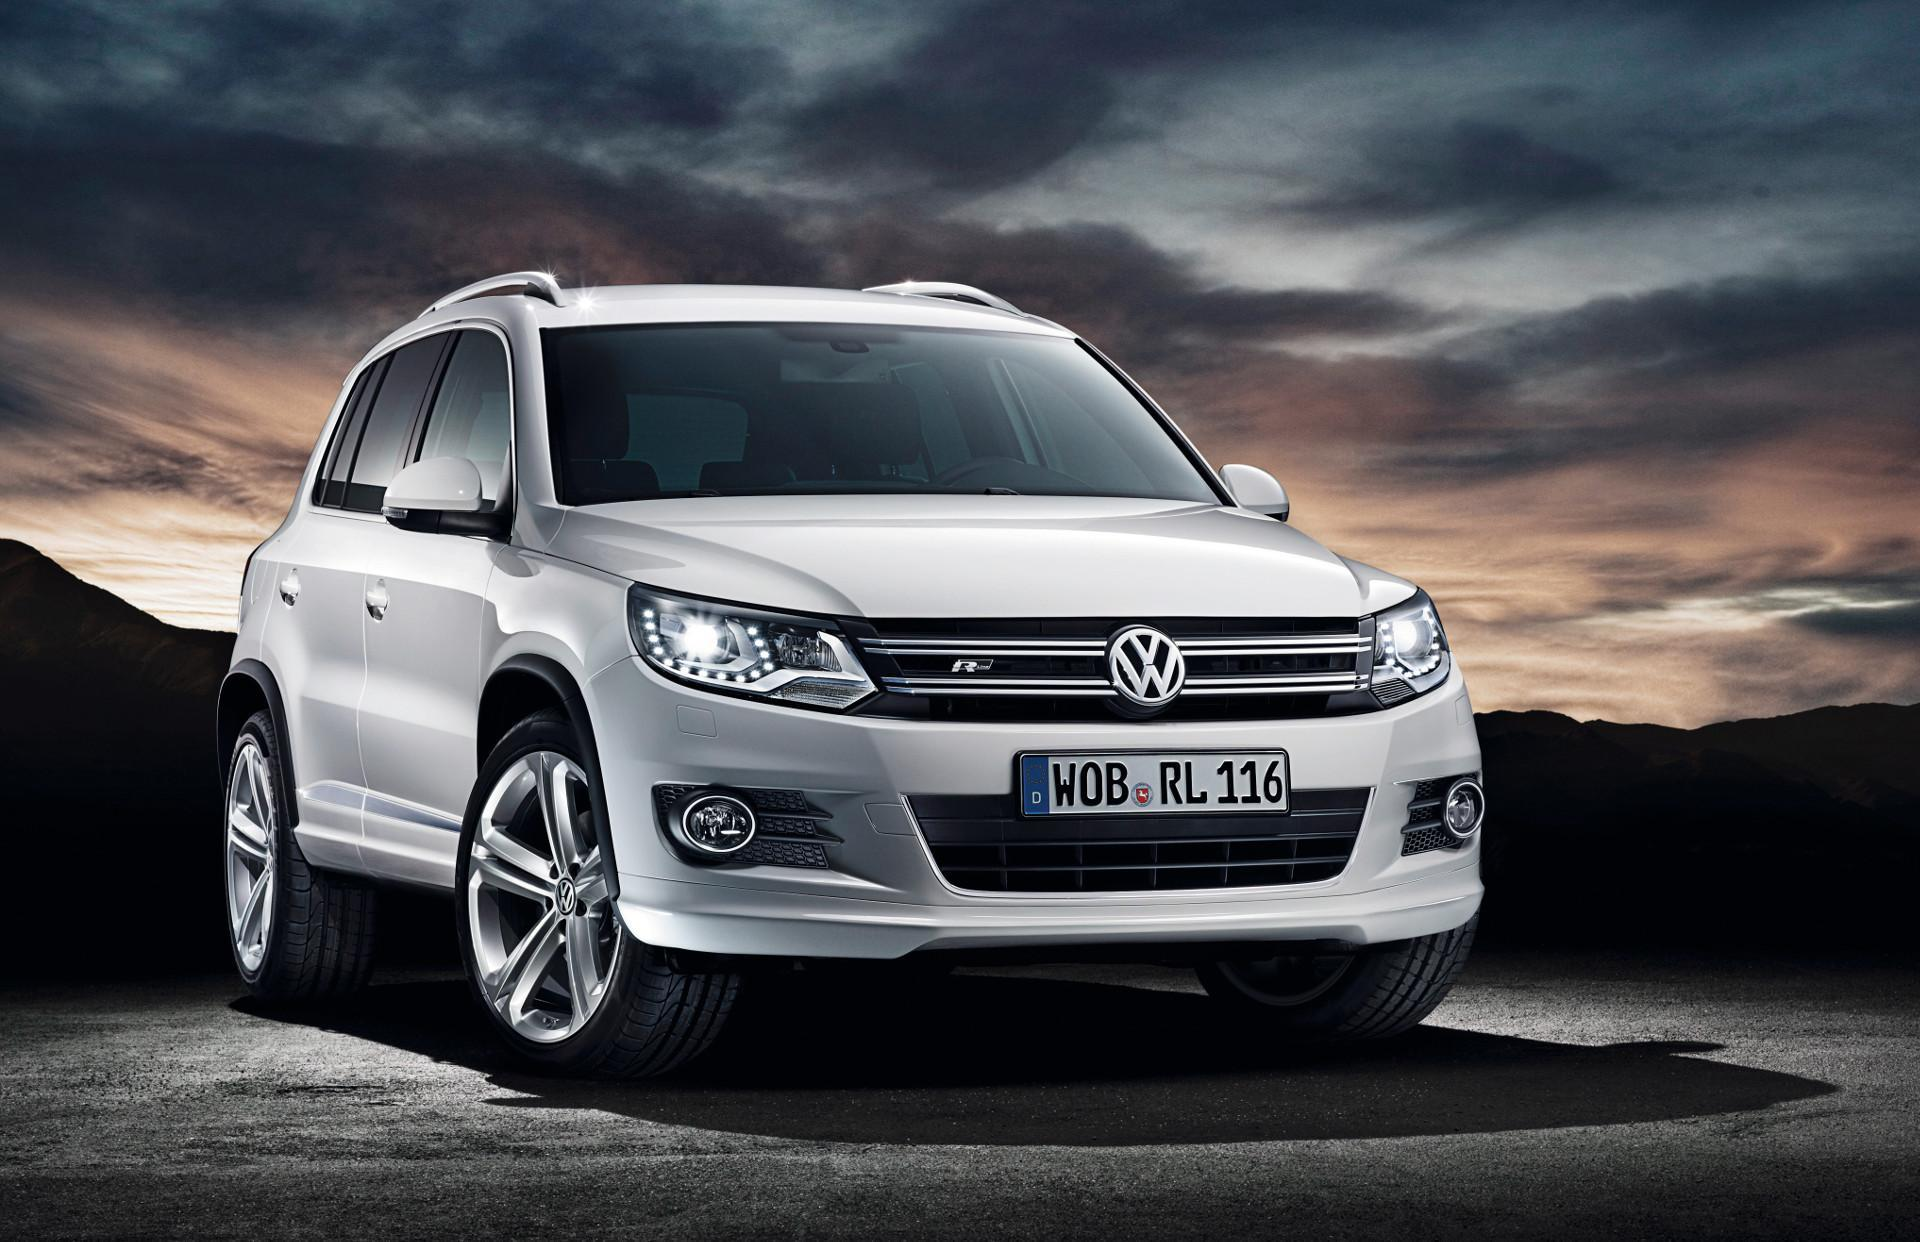 volkswagen tiguan ist allradauto des jahres 2015. Black Bedroom Furniture Sets. Home Design Ideas